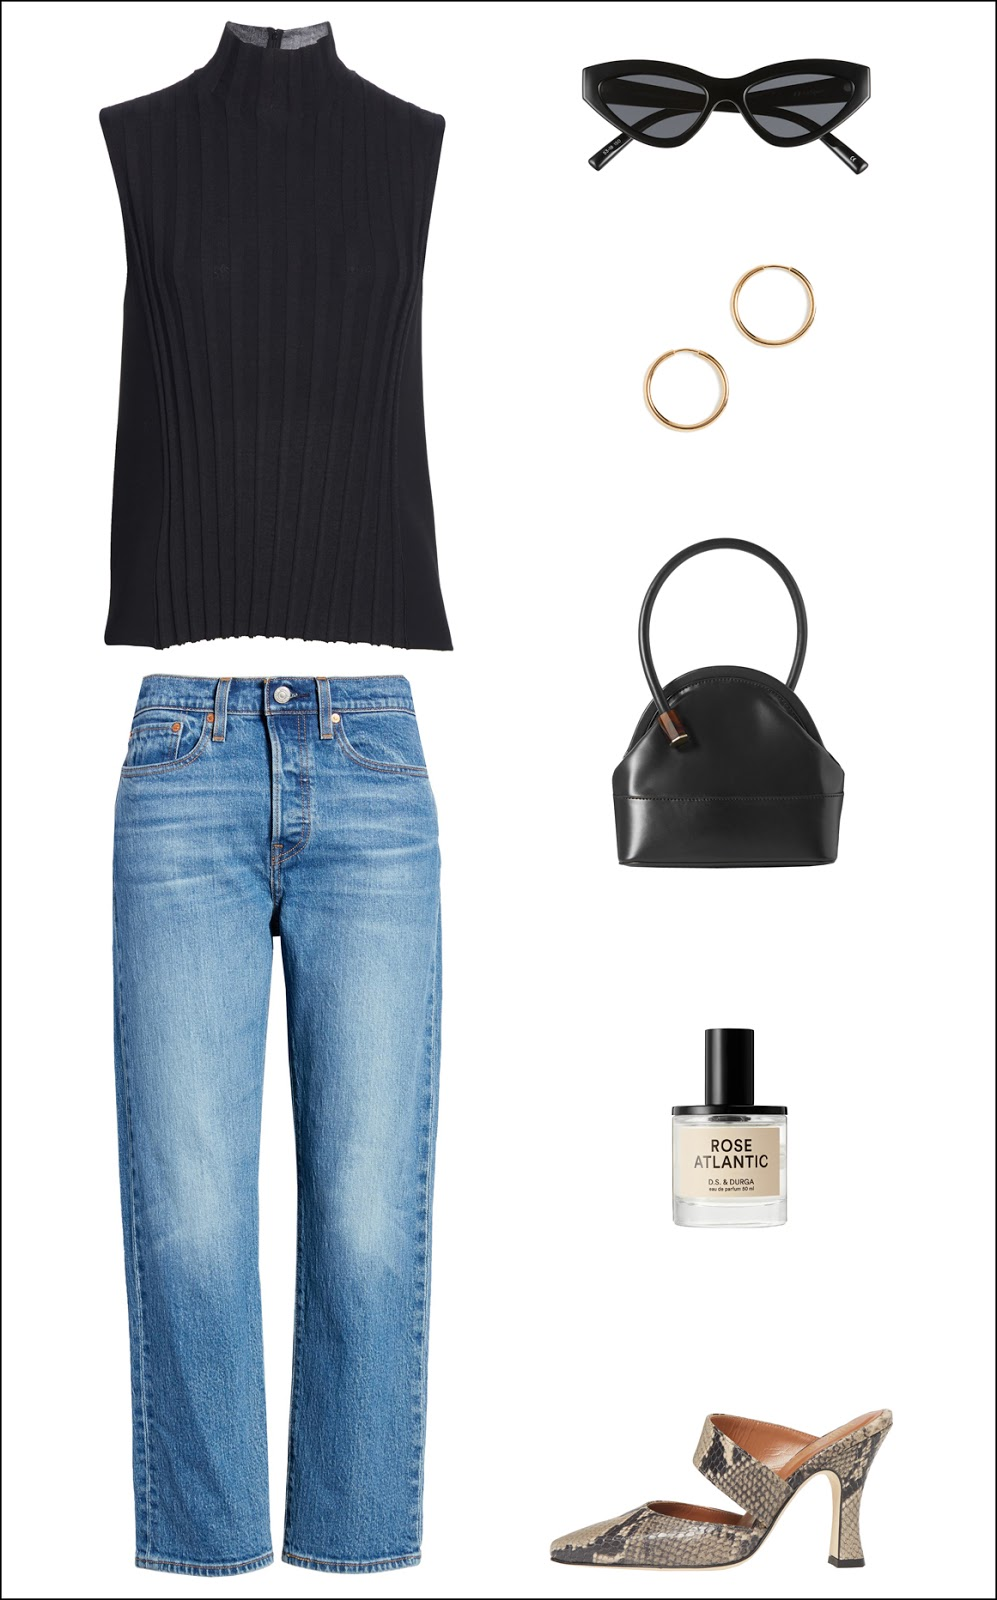 Dressed Up Denim Spring Outfit Idea — Black Sleeveless Top, Cat-Eye Sunglasses, Gold Hoop Earrings, Black Mini Bag, Levi's Jeans, Rose Fragrance, and Snake-Print Mules